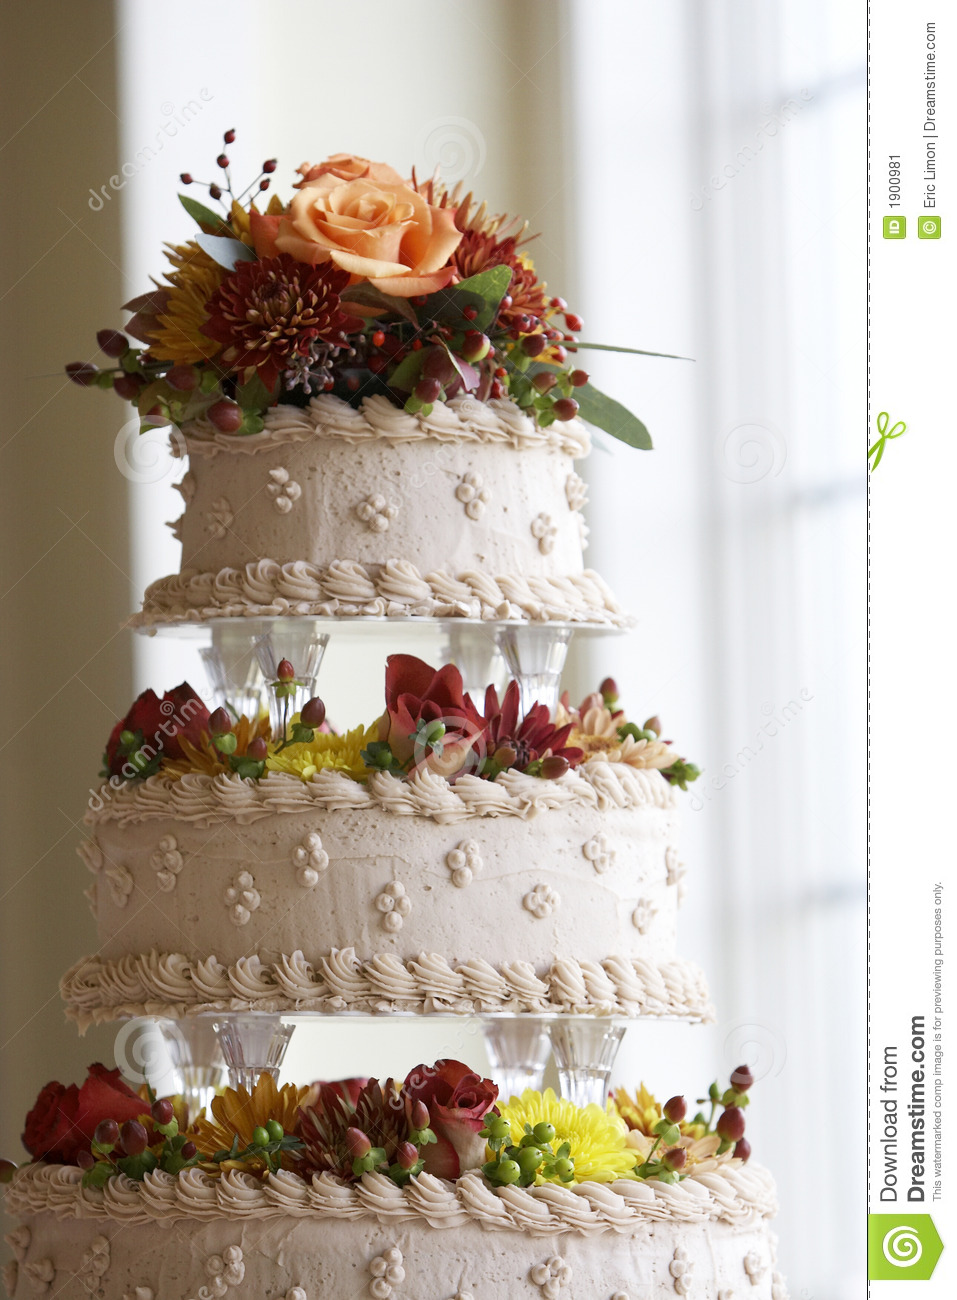 wedding cake flower decoration ideas wedding cake with flower decorations stock image image 22666